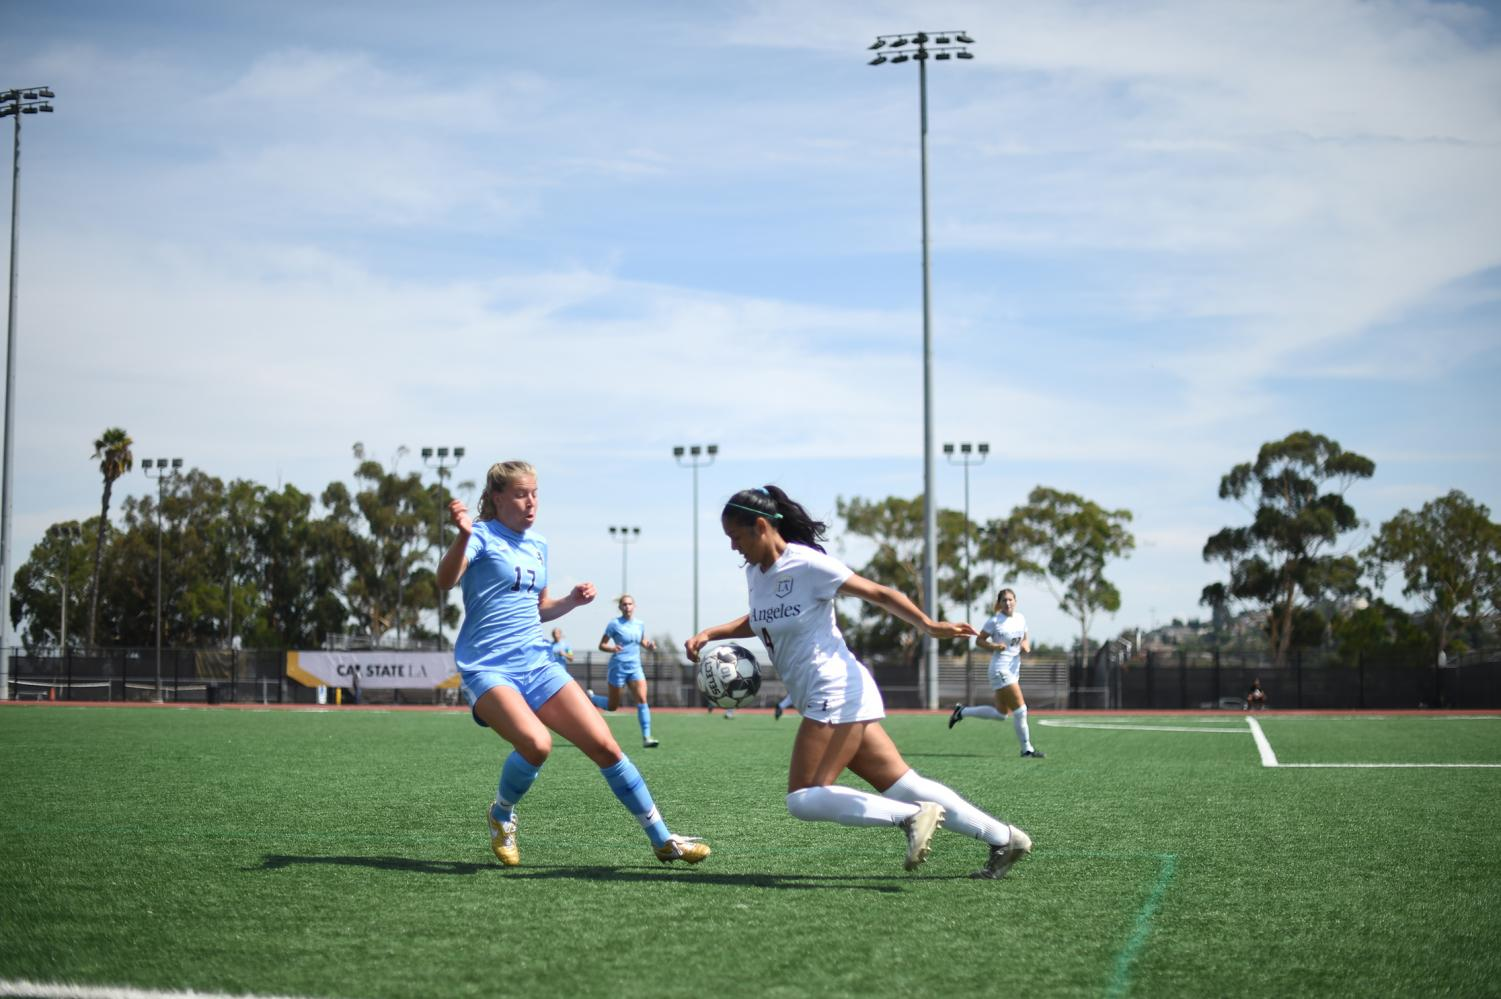 Yailene Lemus (right) counters the opposing player from the ball. Cal State LA women's soccer team won against Western Washington in a game of 1-0 on Monday, September 16, 2019.